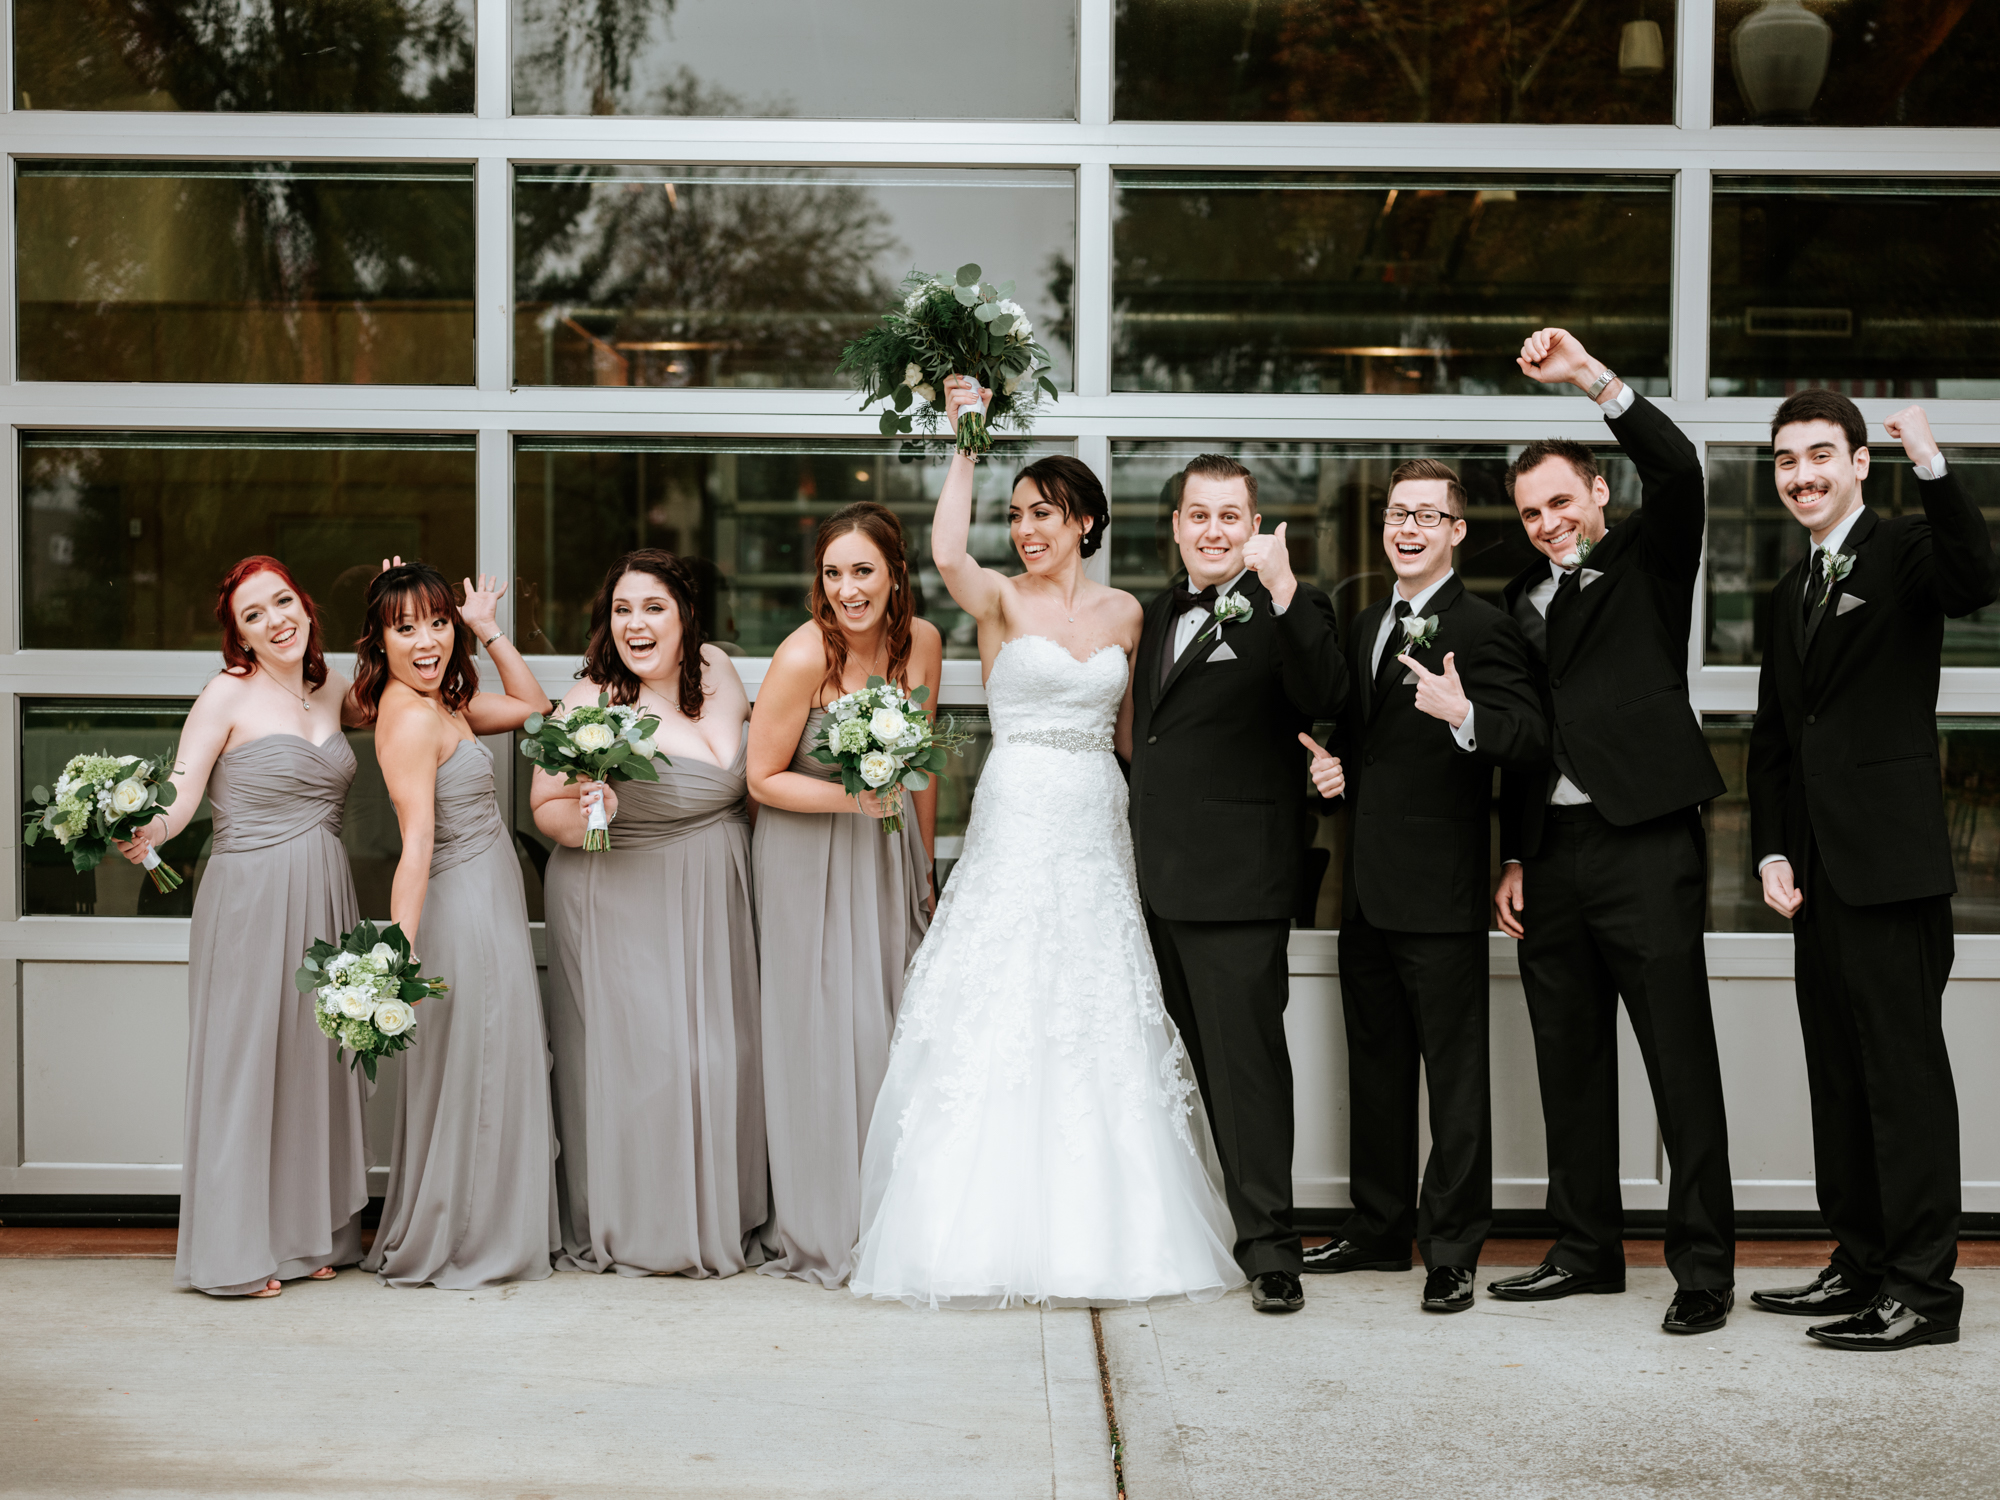 Stolen Glimpses Seattle Wedding Photographers 39.jpg